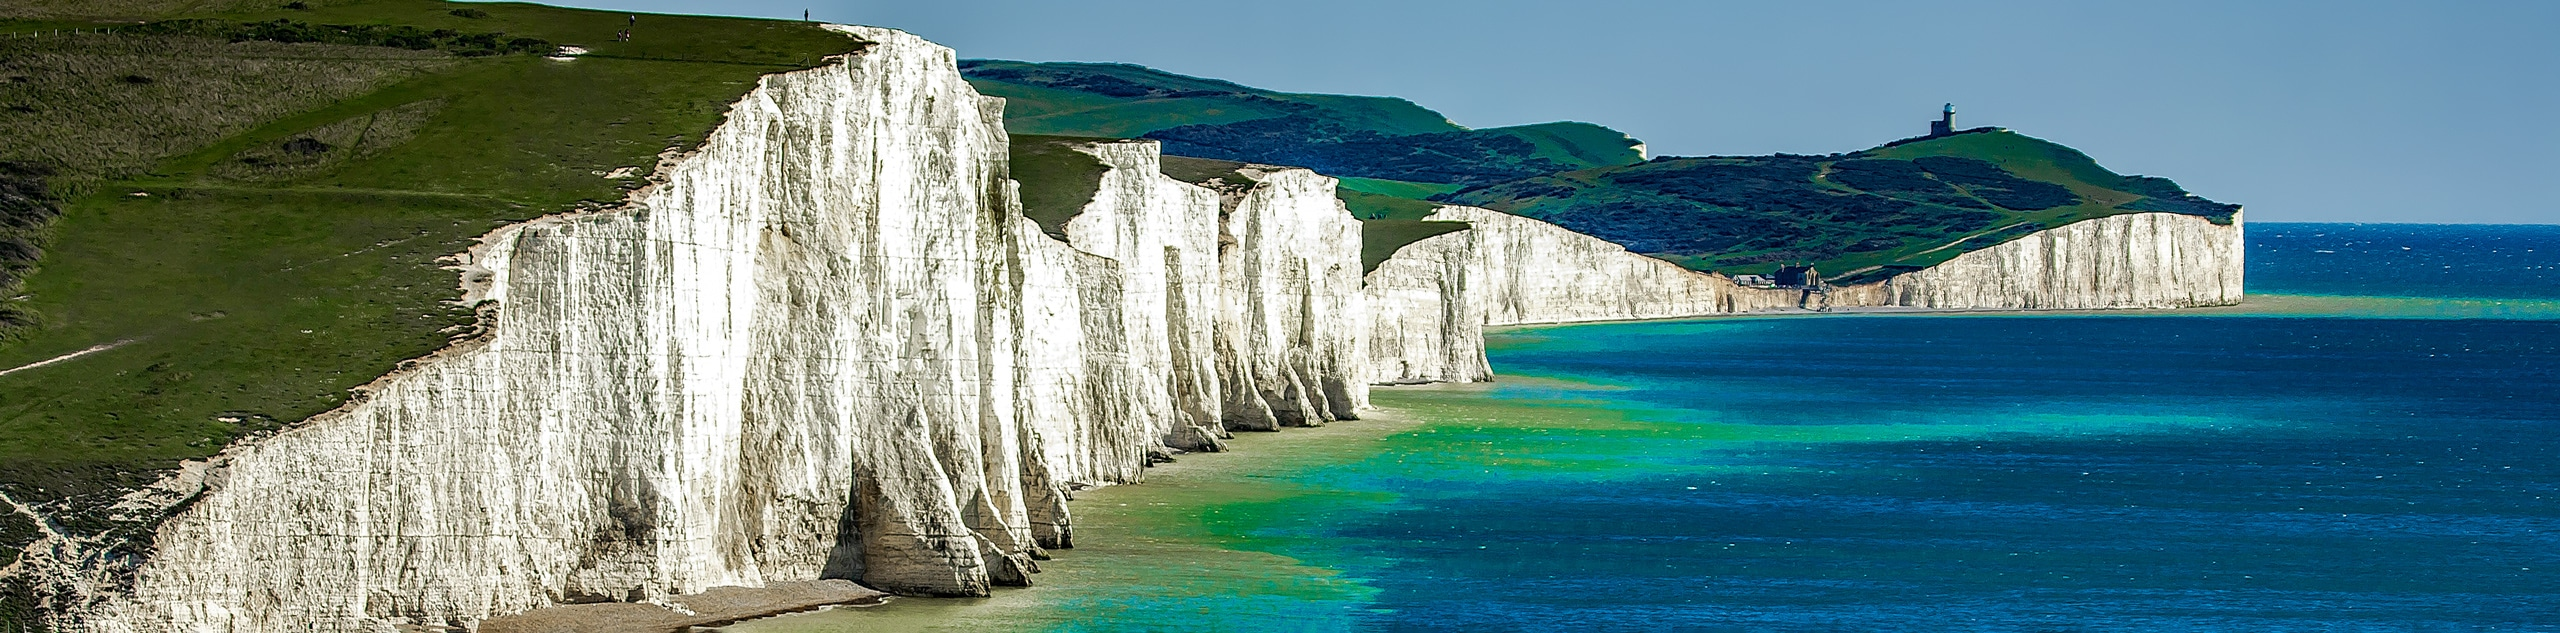 Seven Sisters and Friston Forest Circular Walk